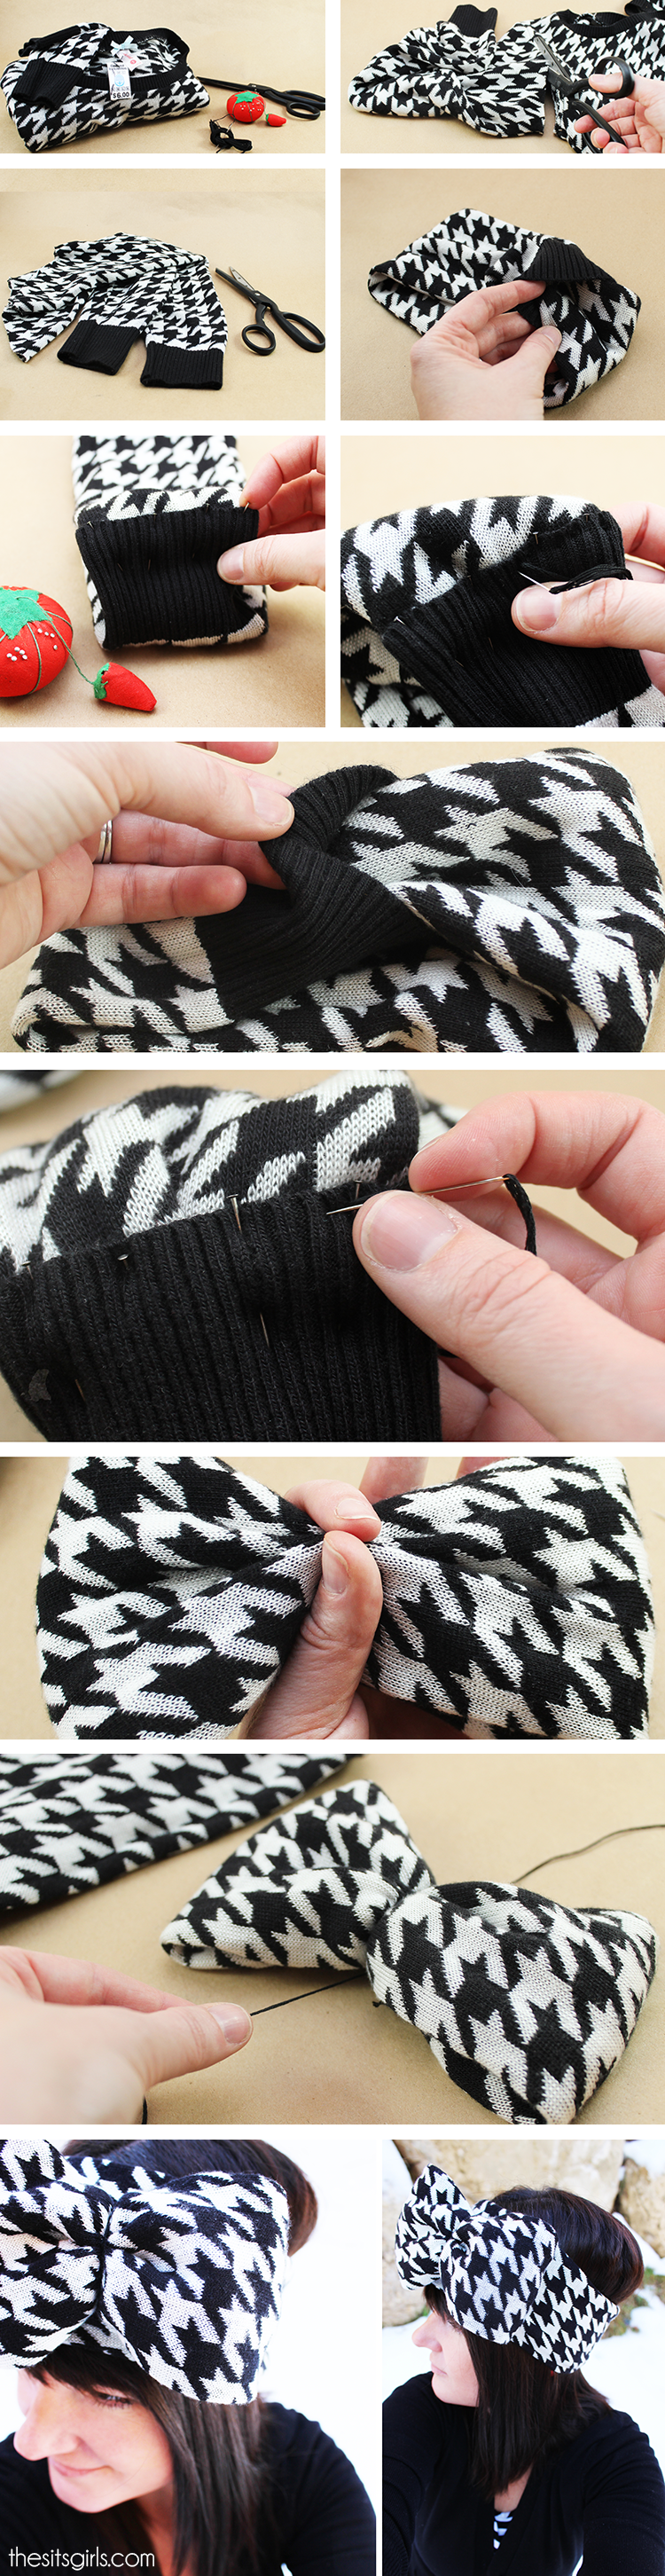 Step-by-step tutorial for making a pattern ear warmer head wrap with a bow.